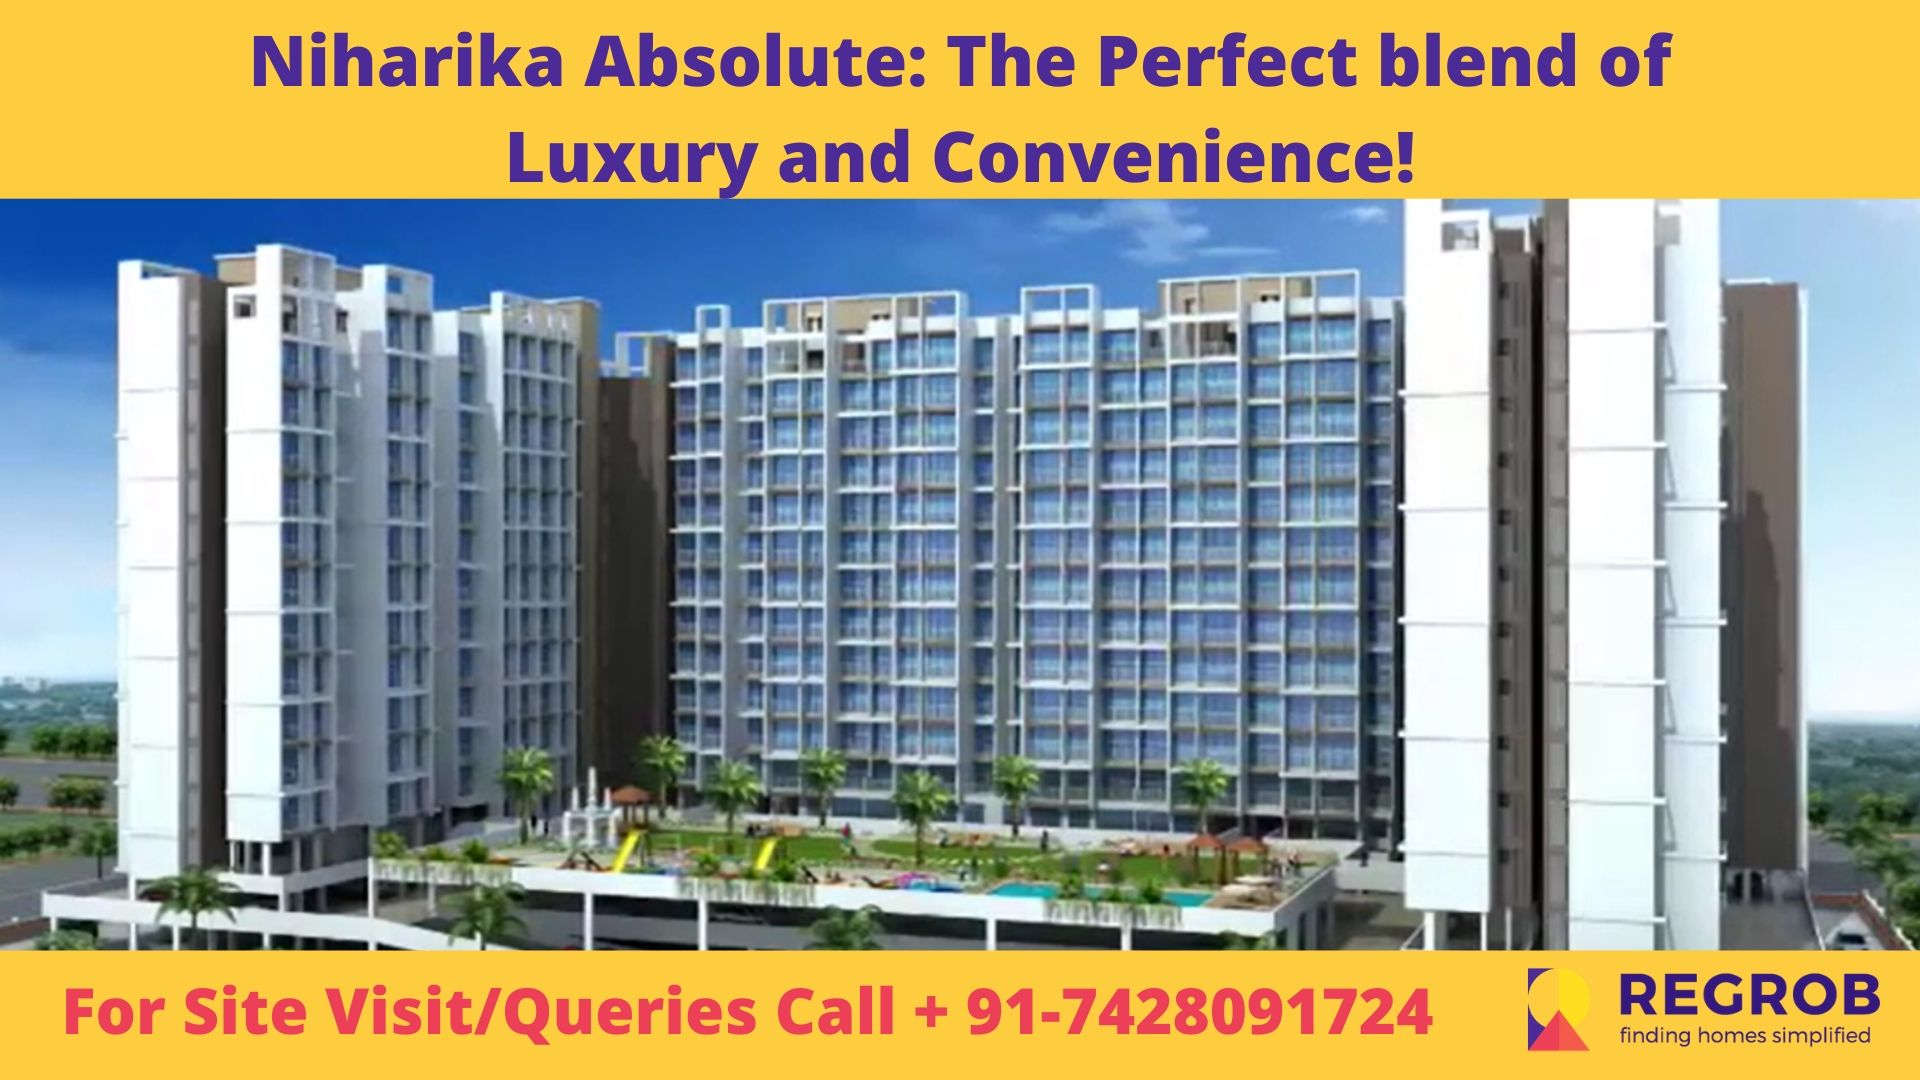 Niharika Absolute_ The Perfect blend of Luxury and Convenience!